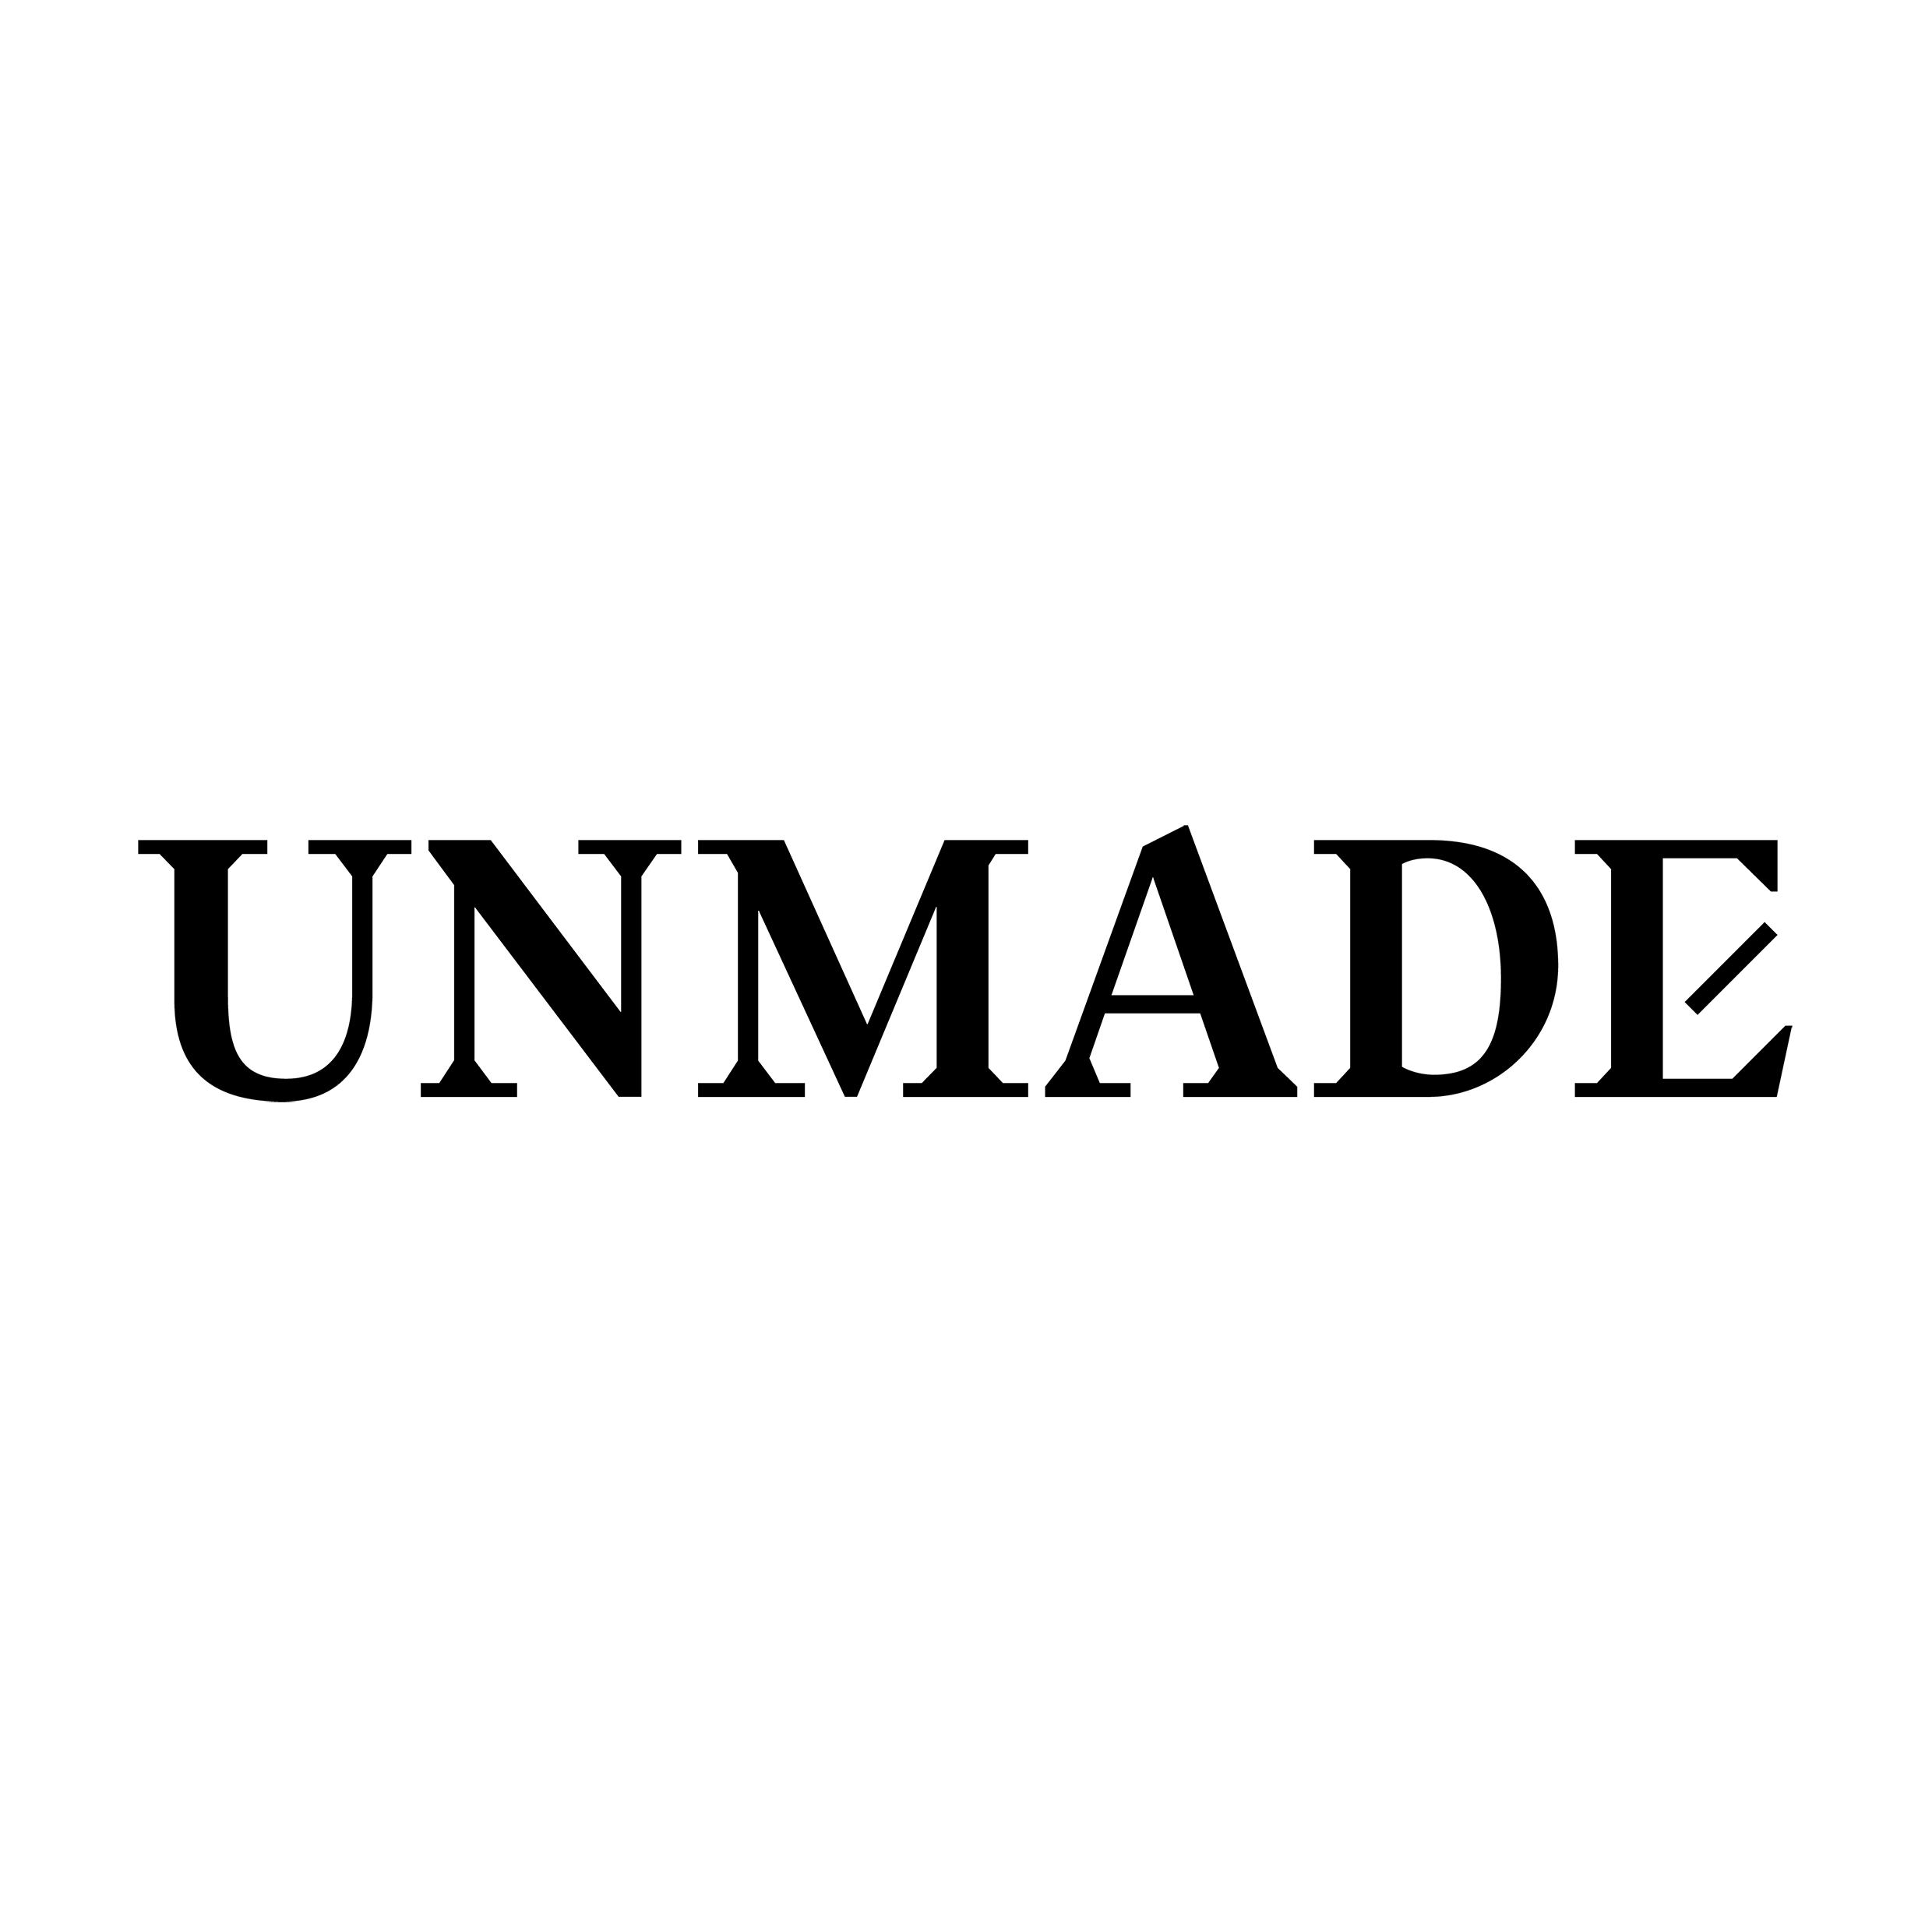 Unmade_Square.png